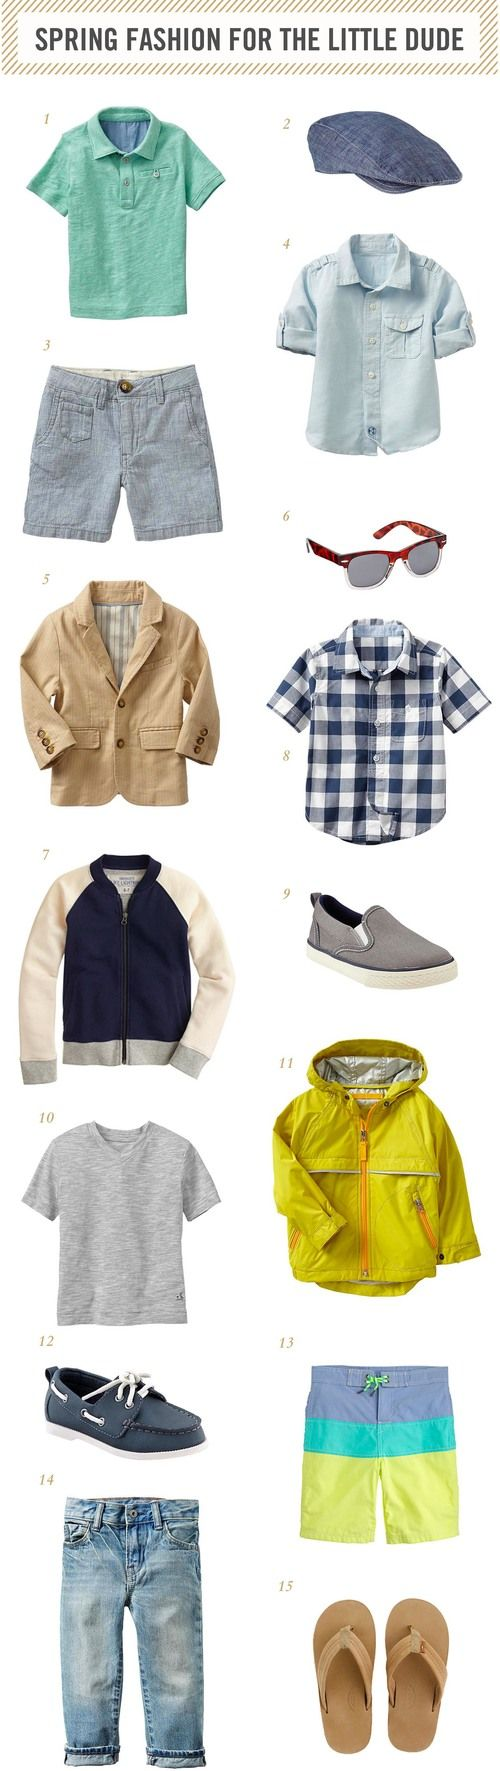 | spring fashion for little boys |